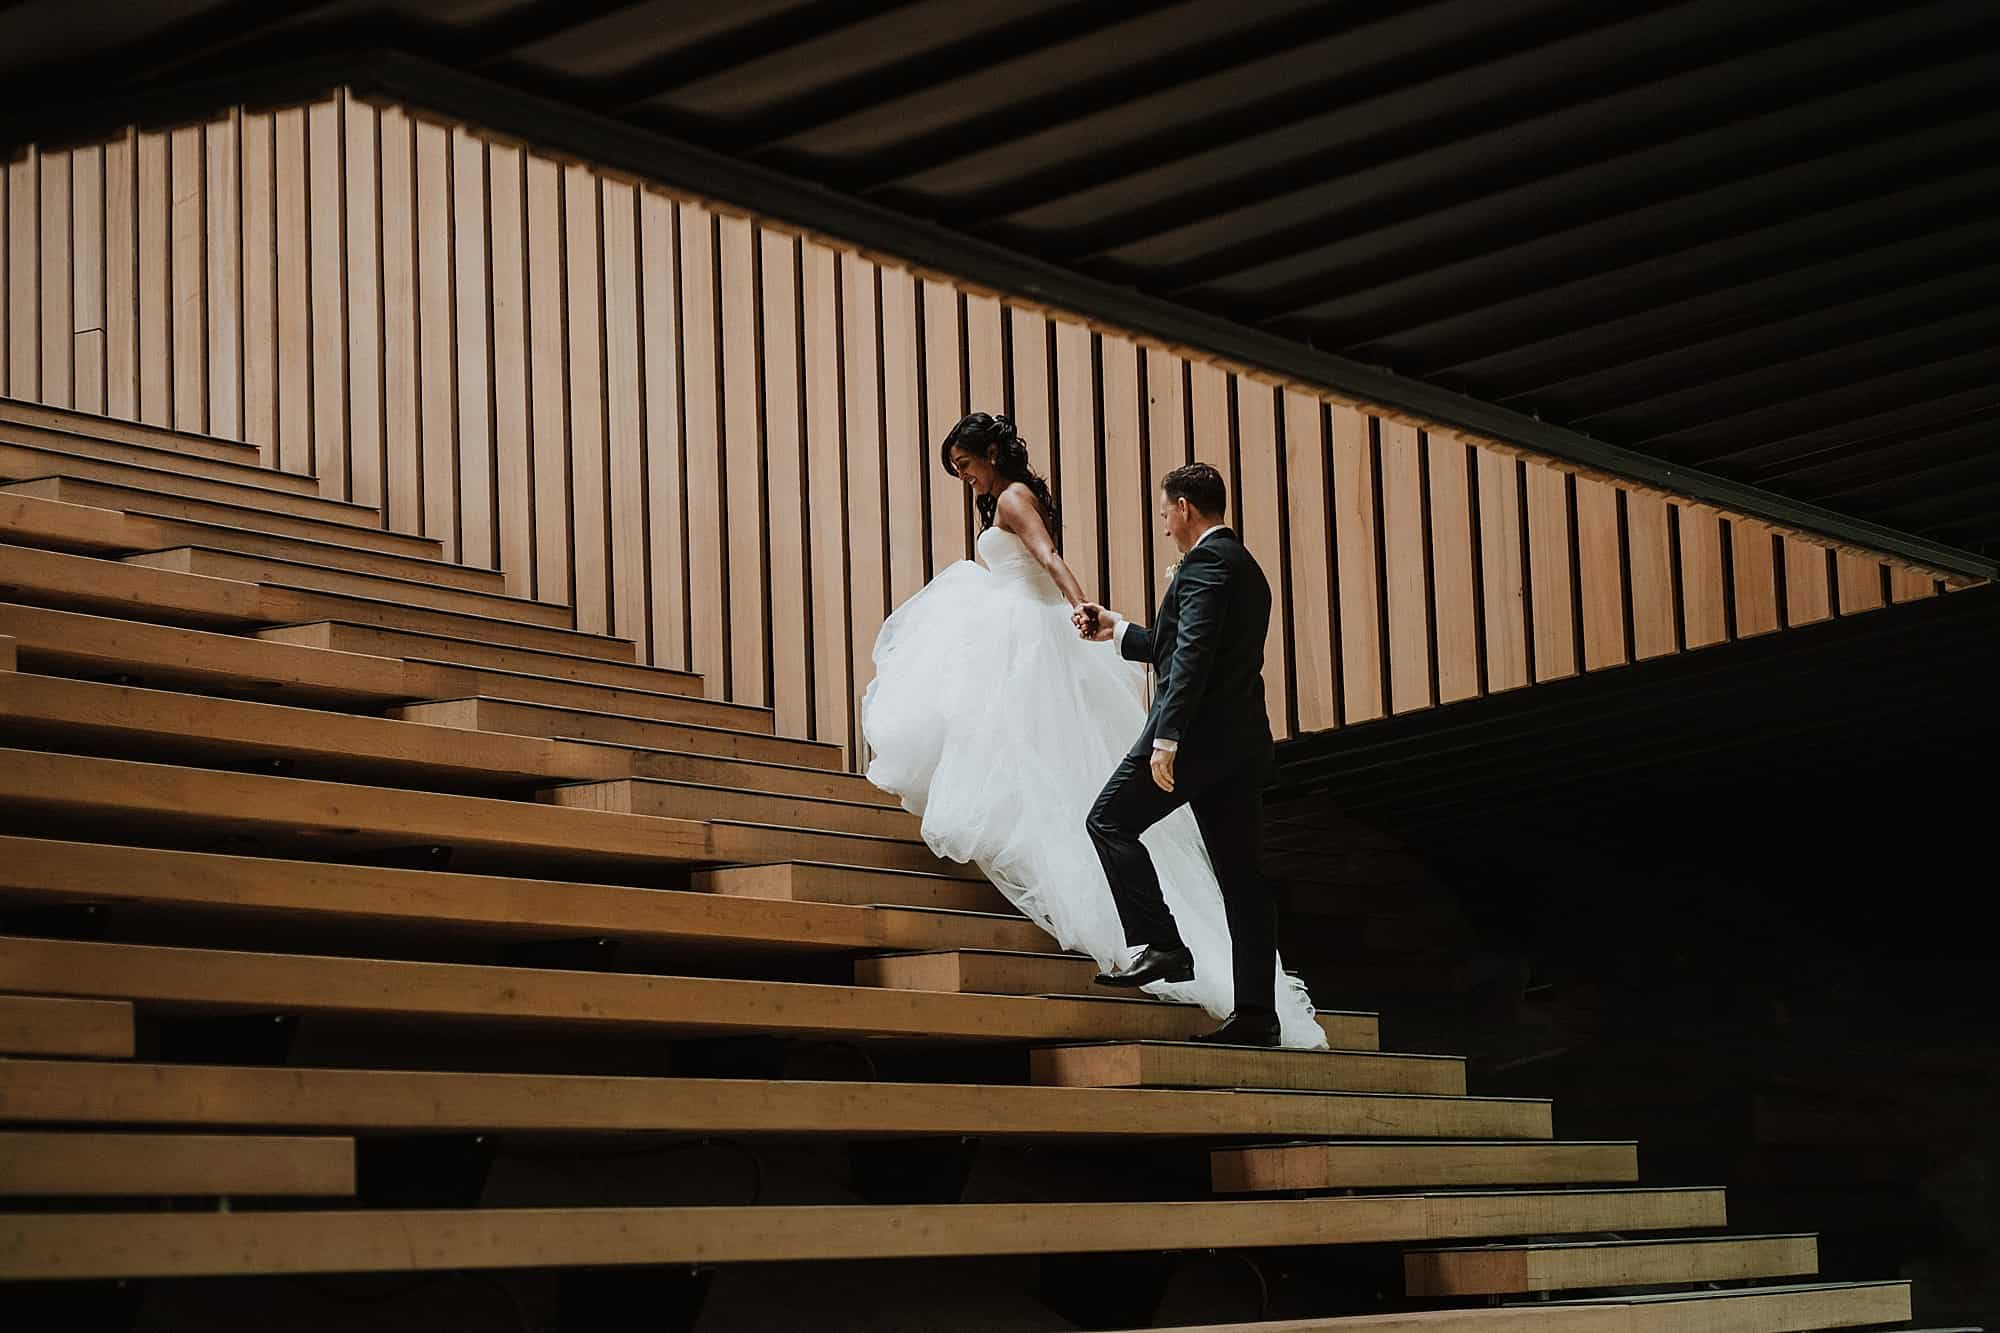 wedding couple walking up stairs outside Audain Art Museum